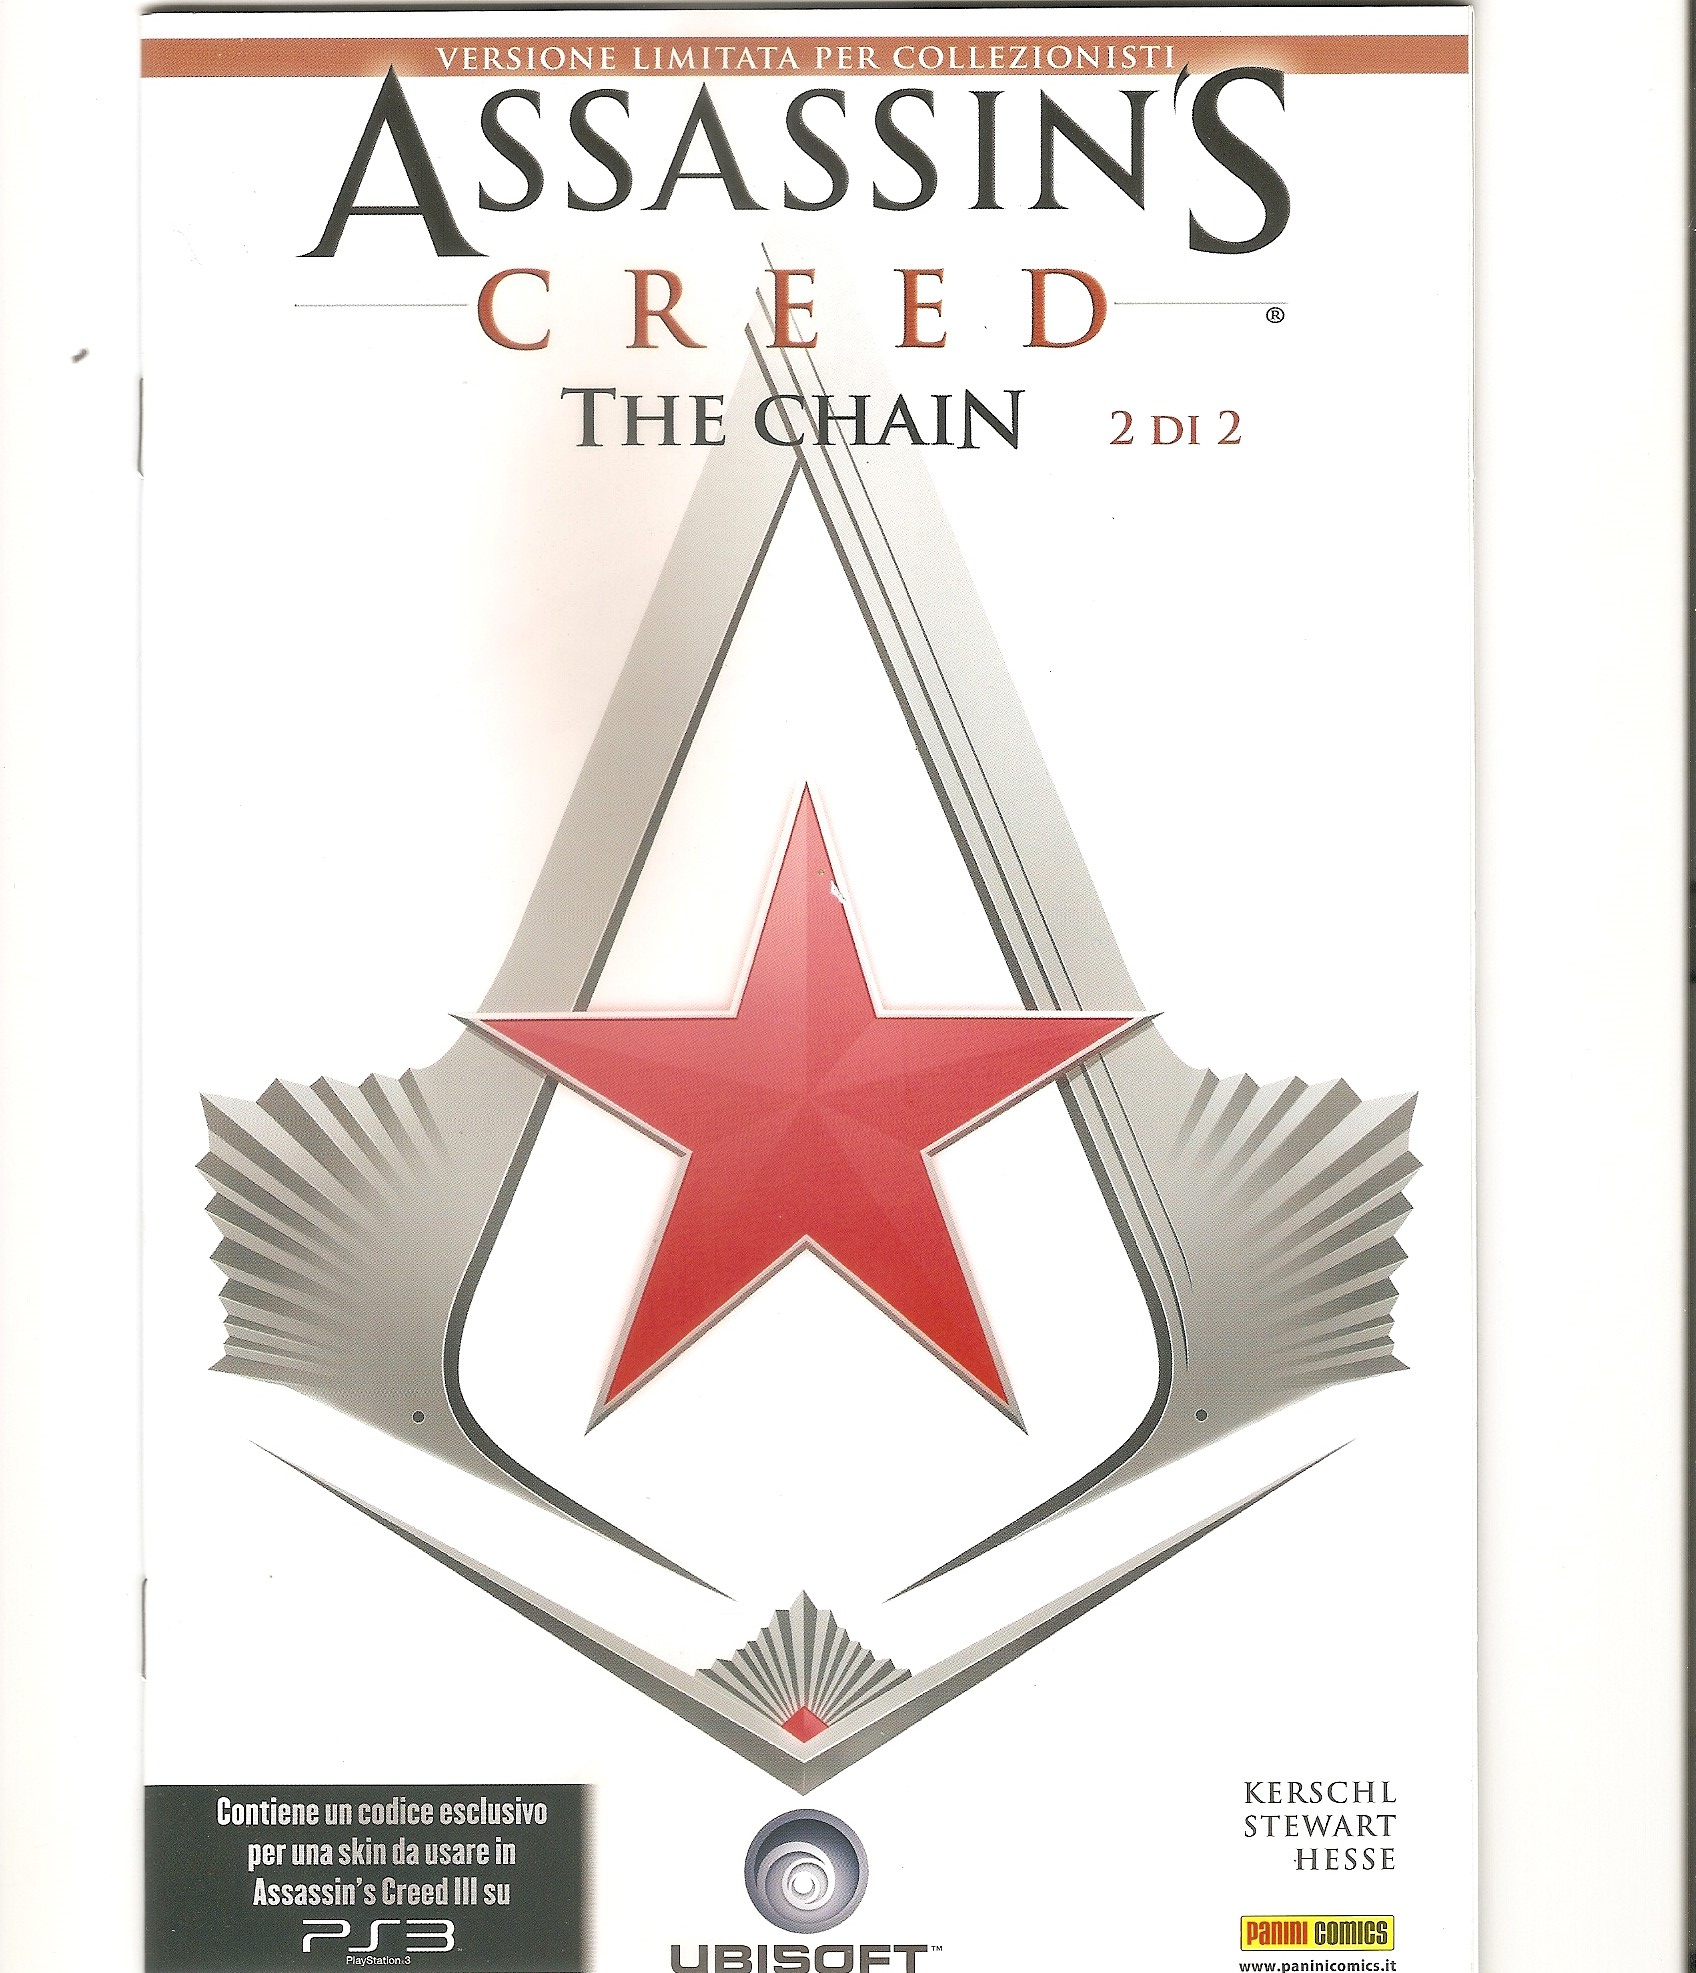 Assassin's creed: The chain n. 2 (di 2)